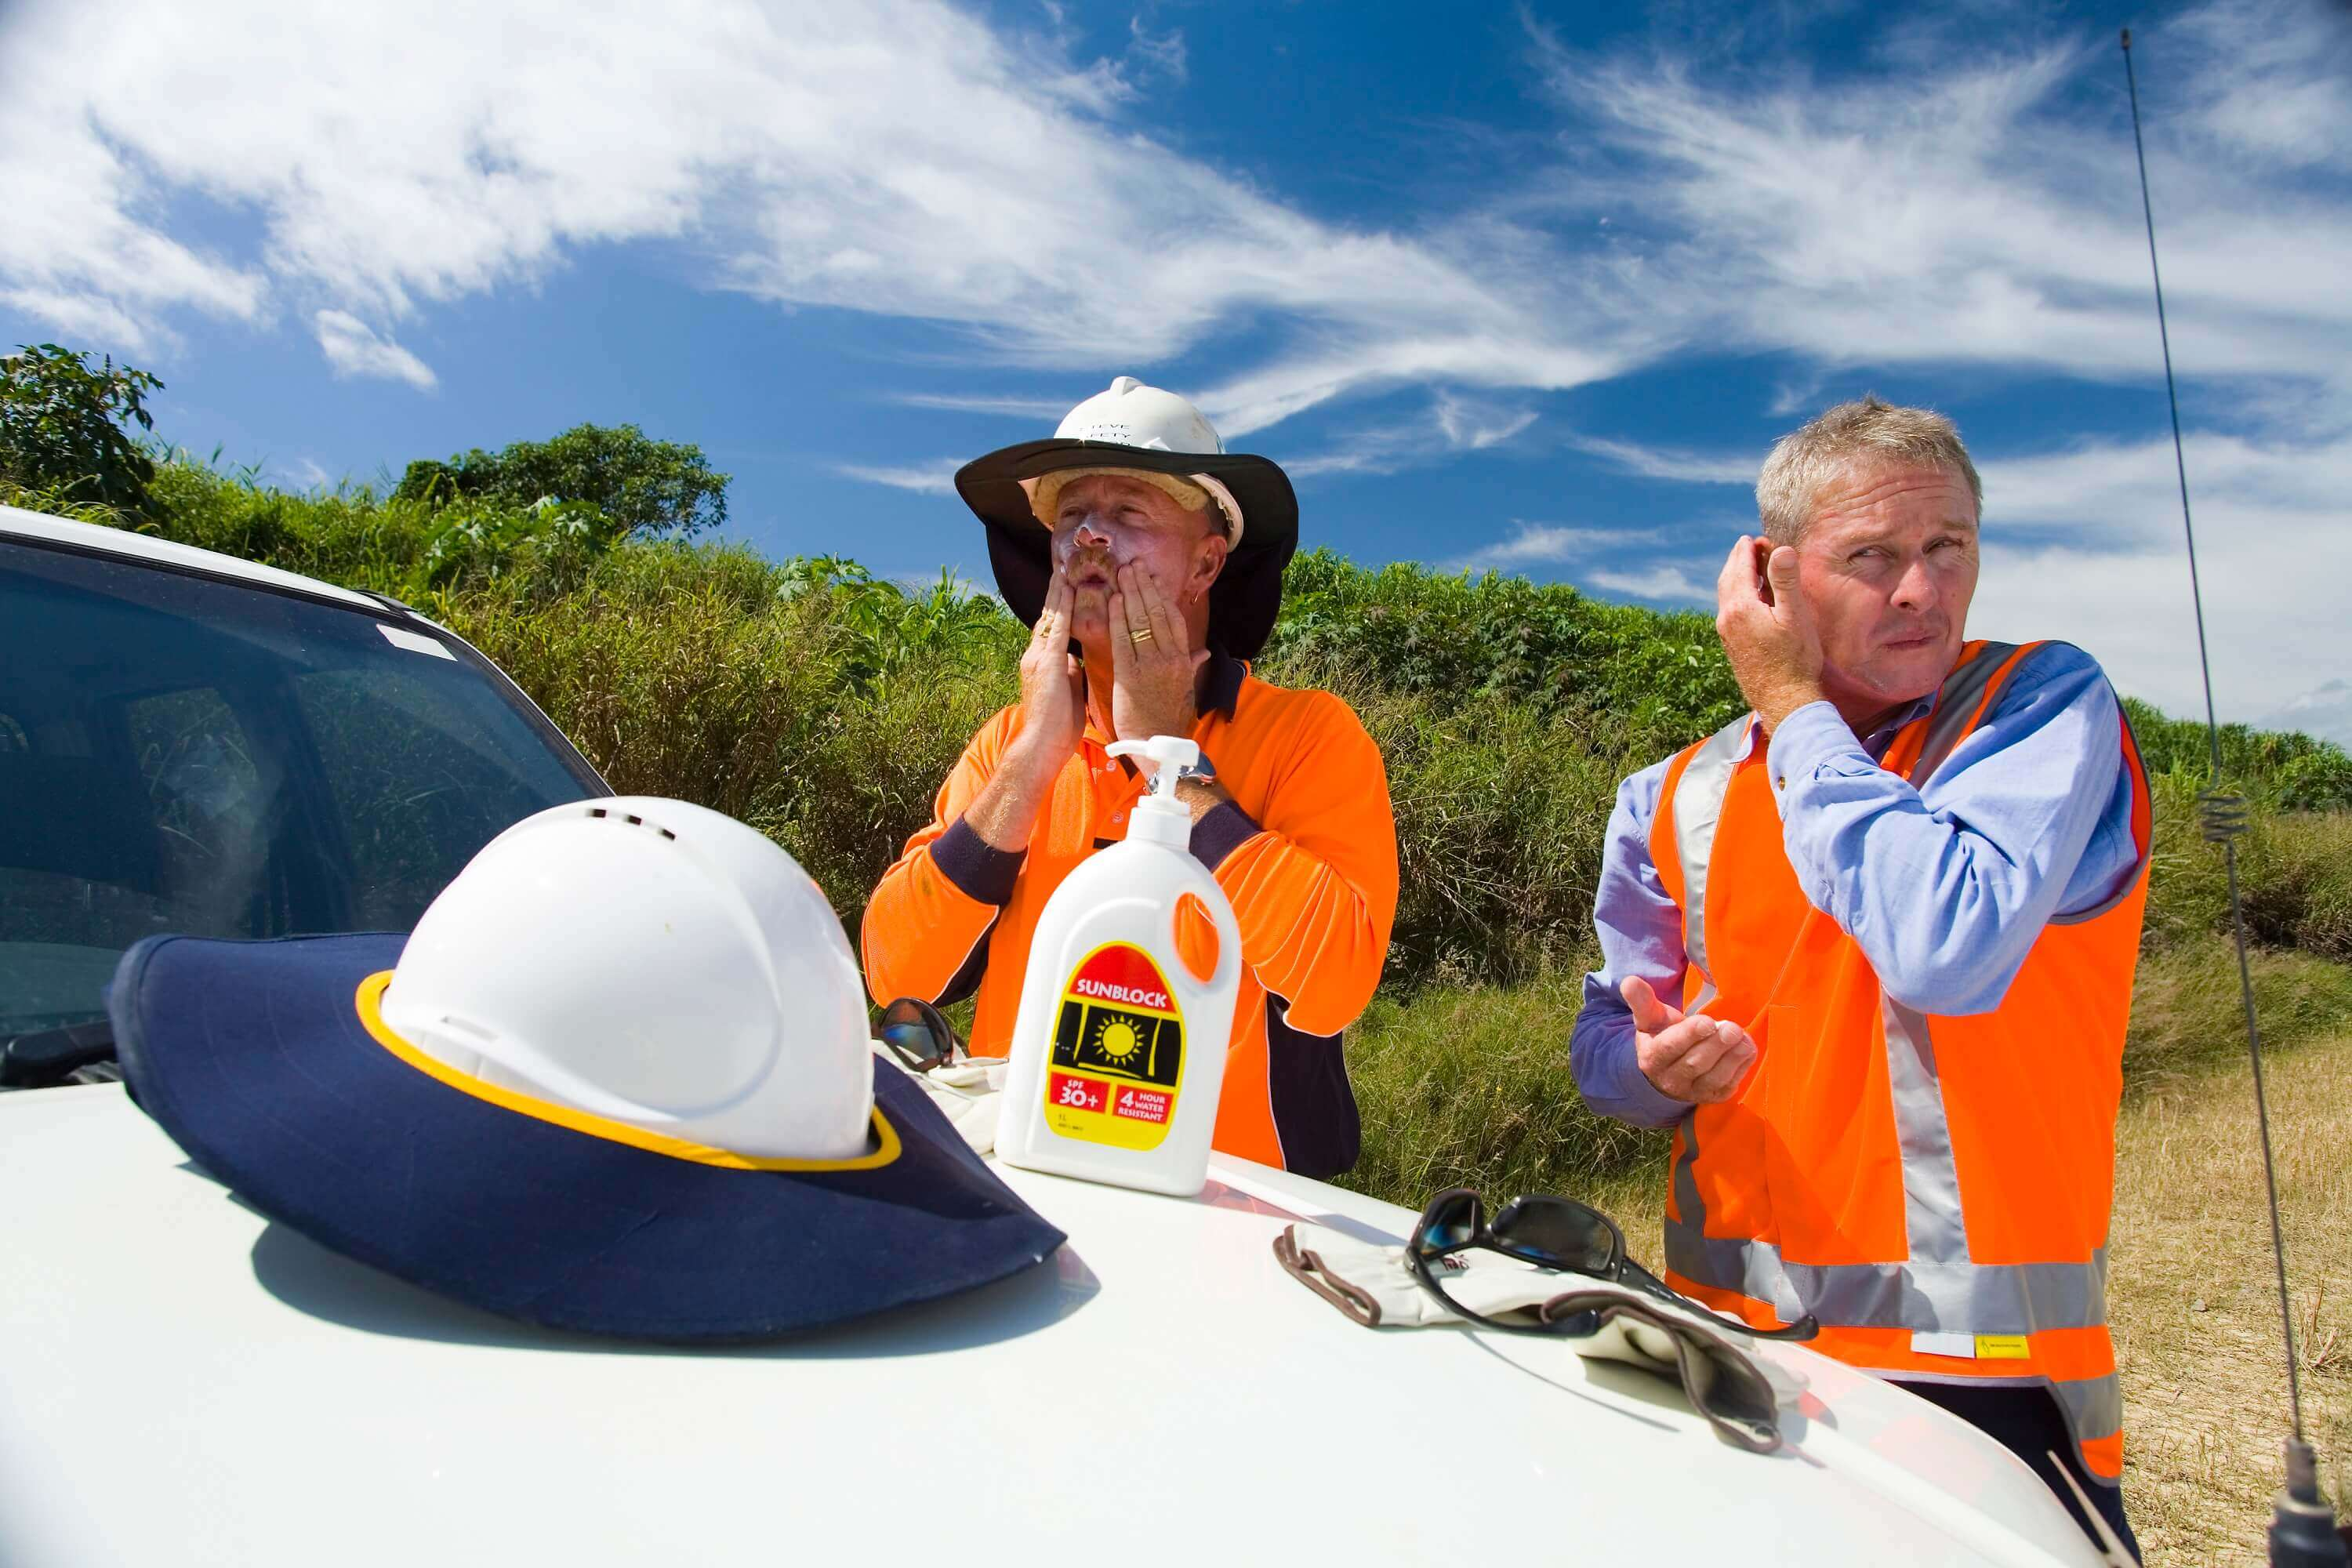 Wear all the PPE required to stay safe in Australian summer